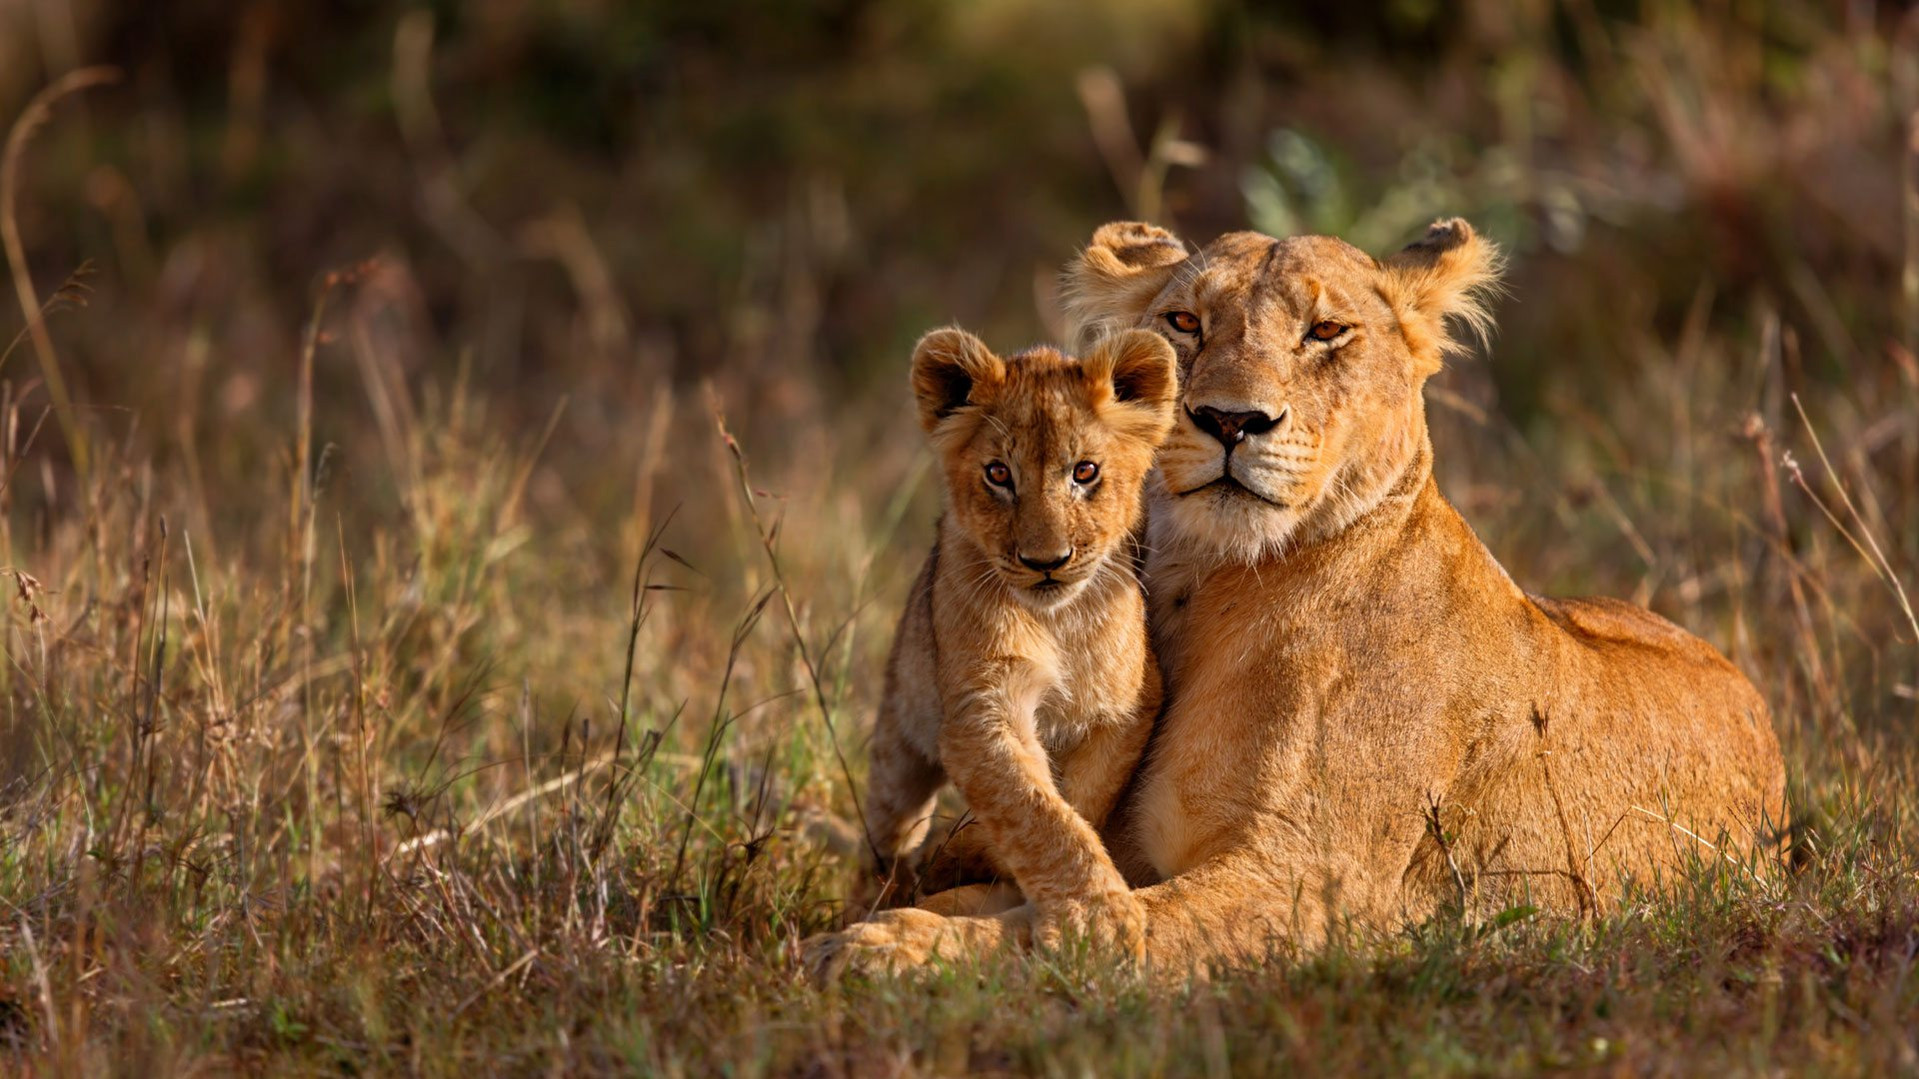 A-tender-moment-between-Lioness-and-cub.